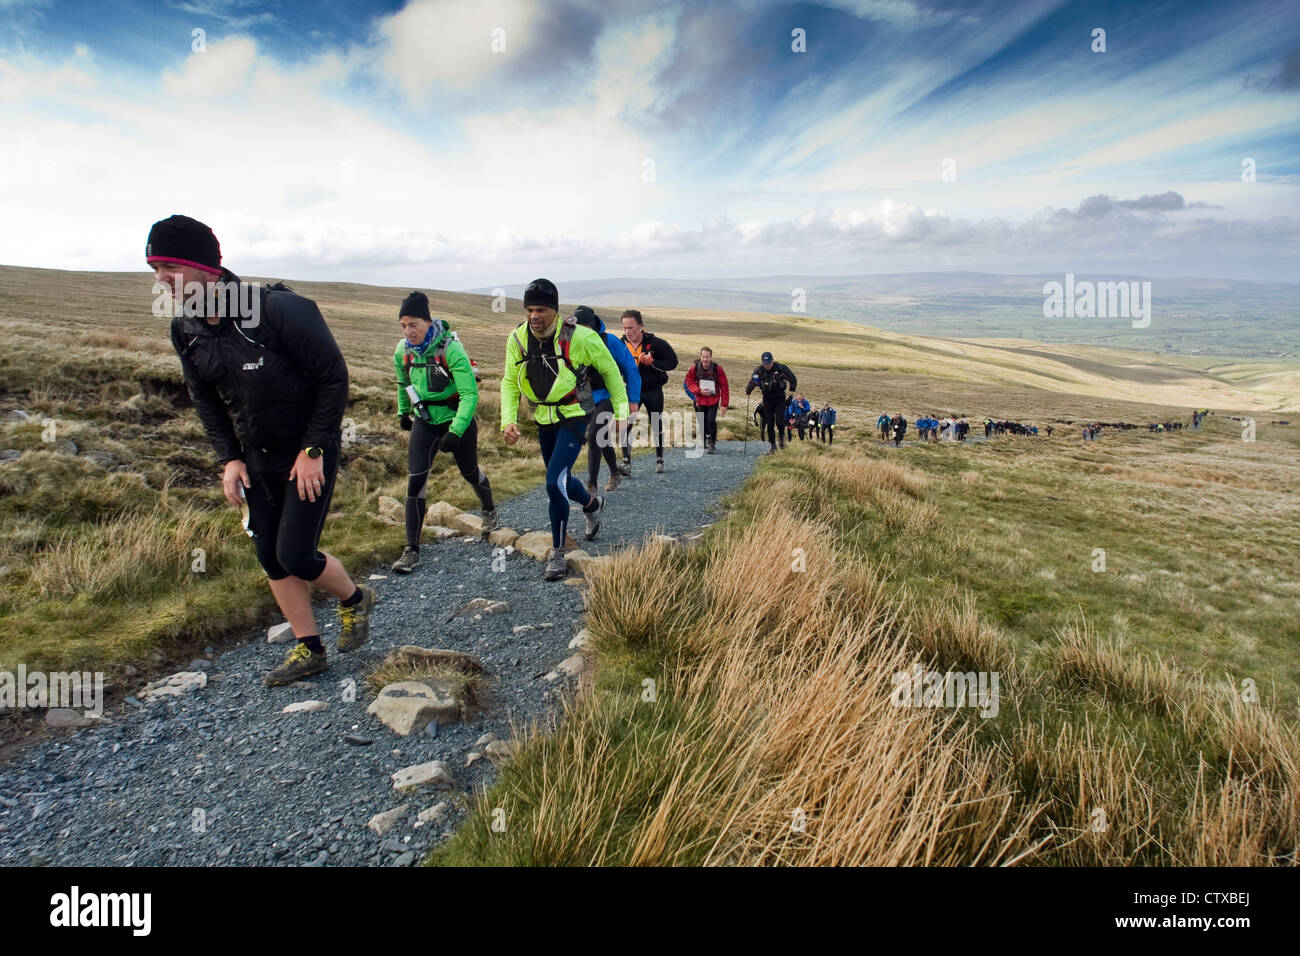 Competitors in the Fellsman tackle the path up Ingleborough - Stock Image